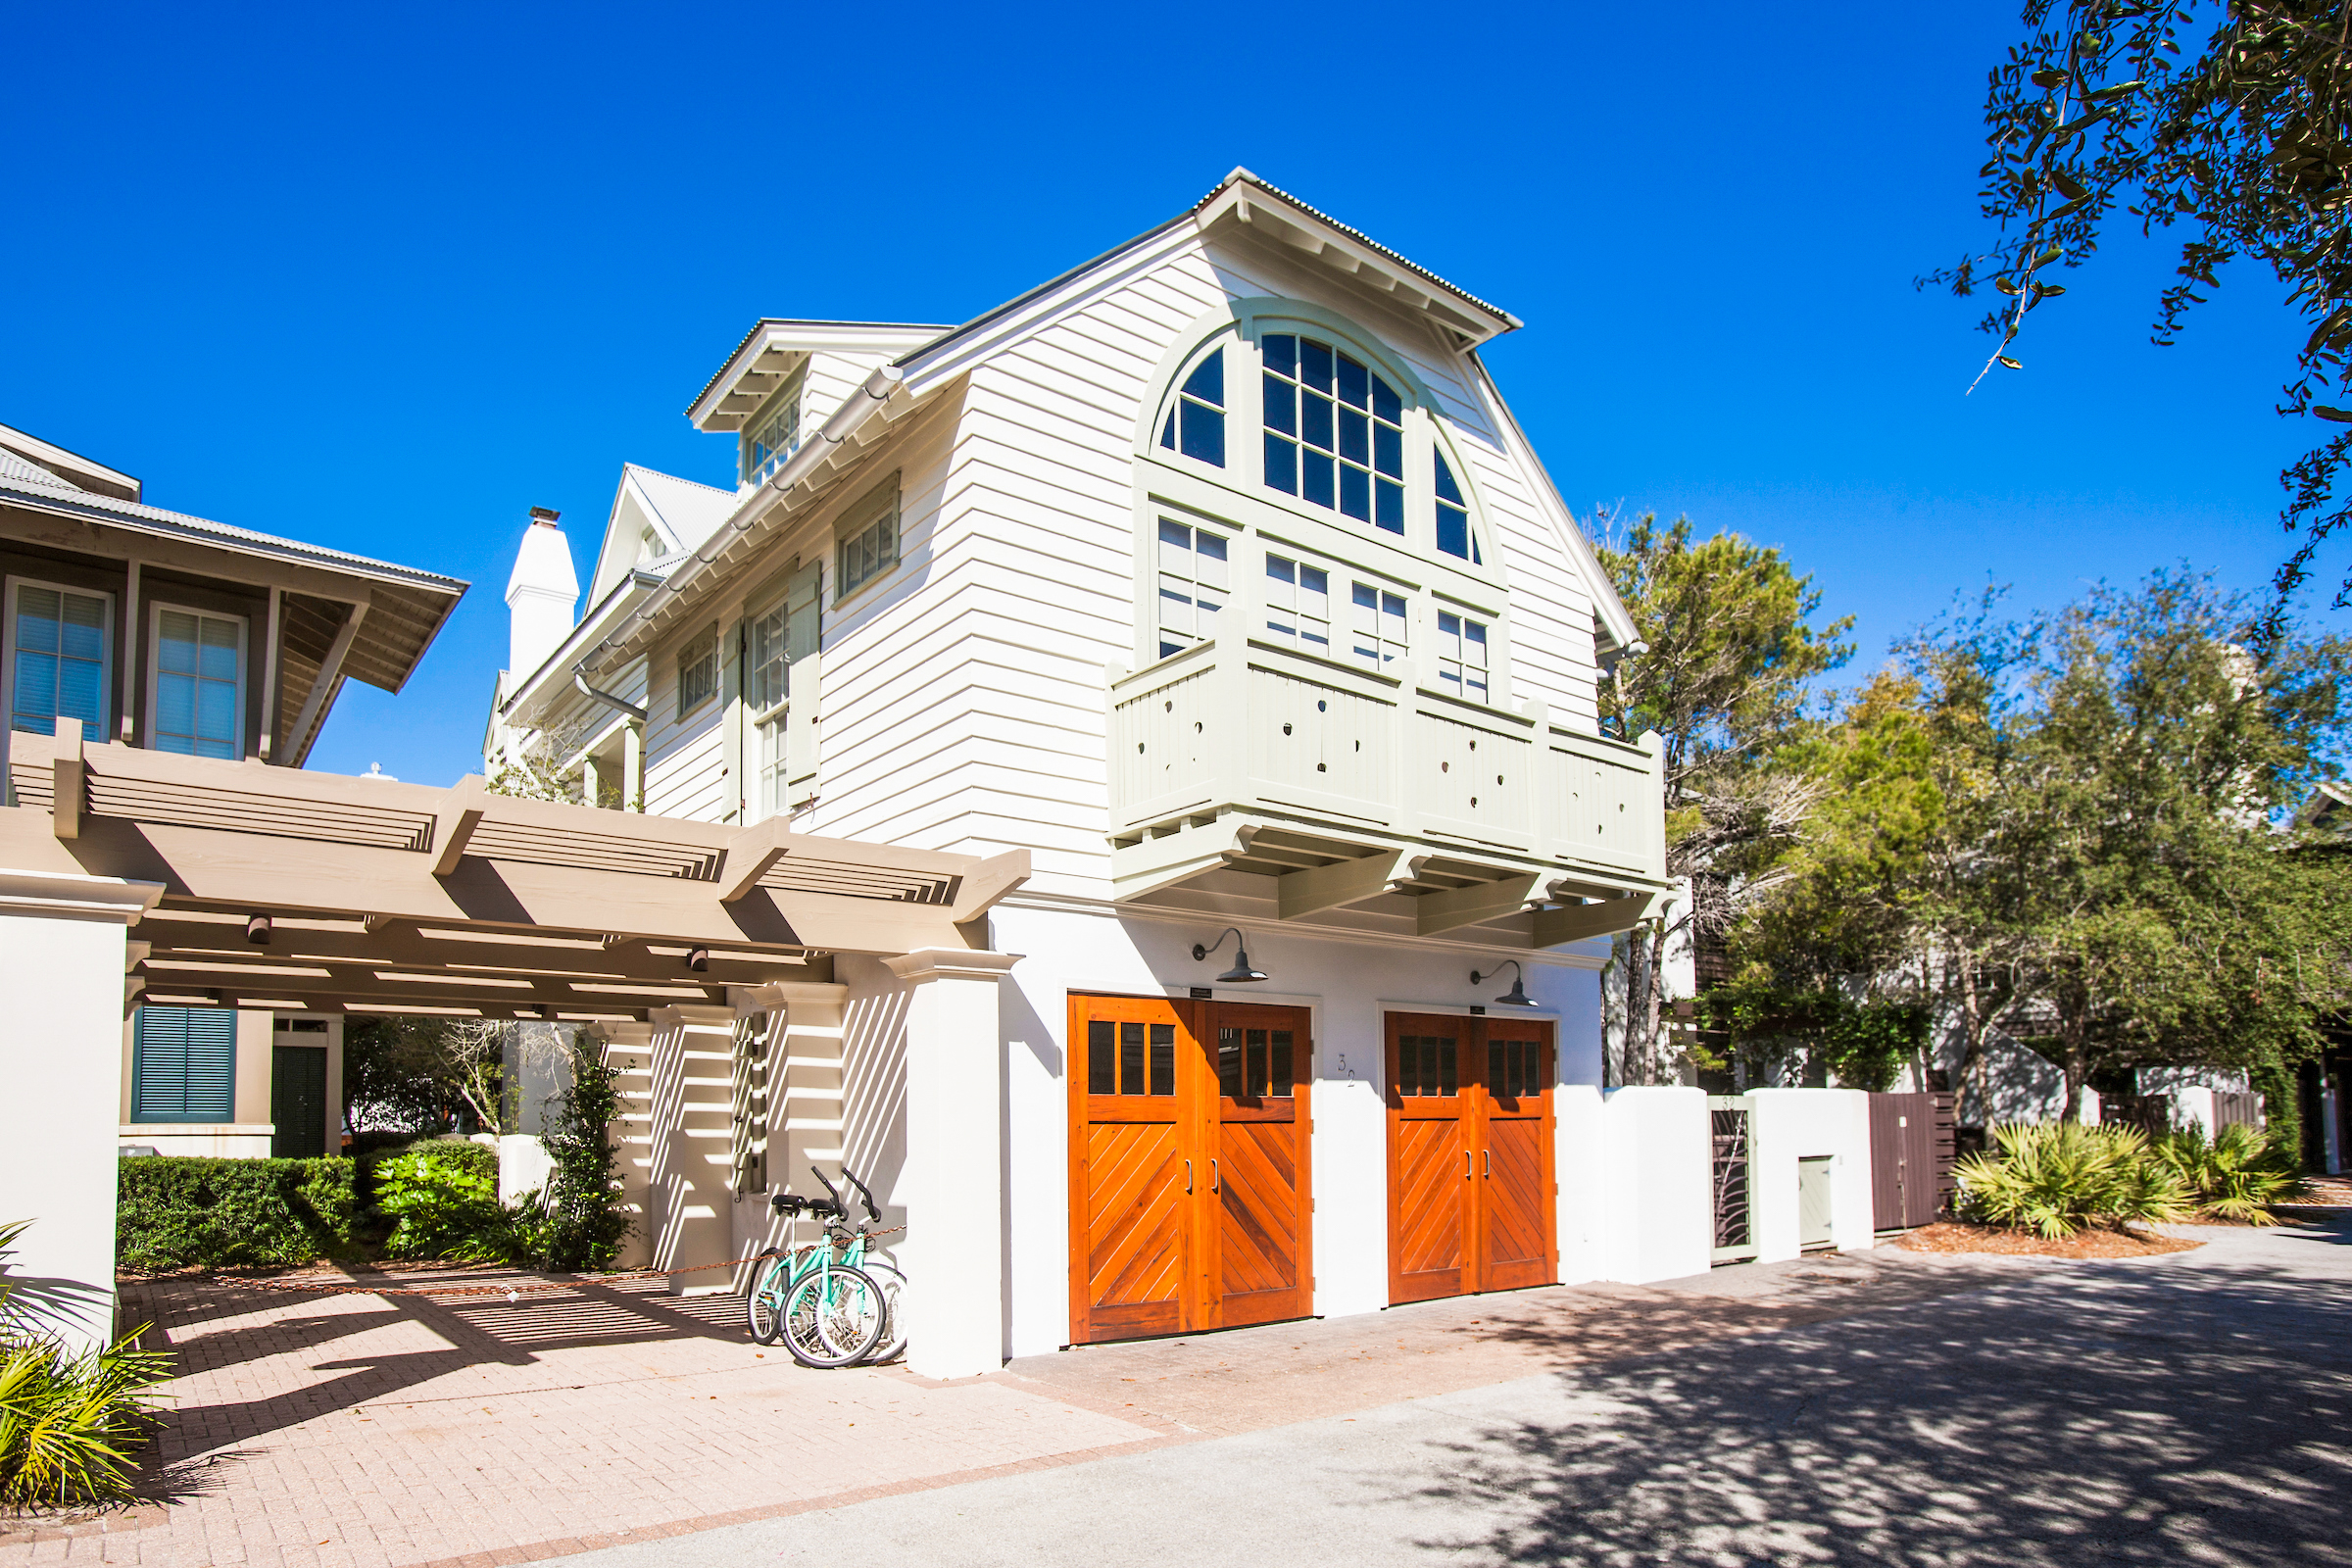 Rosemary Beach FL Vacation Rental Welcome to the